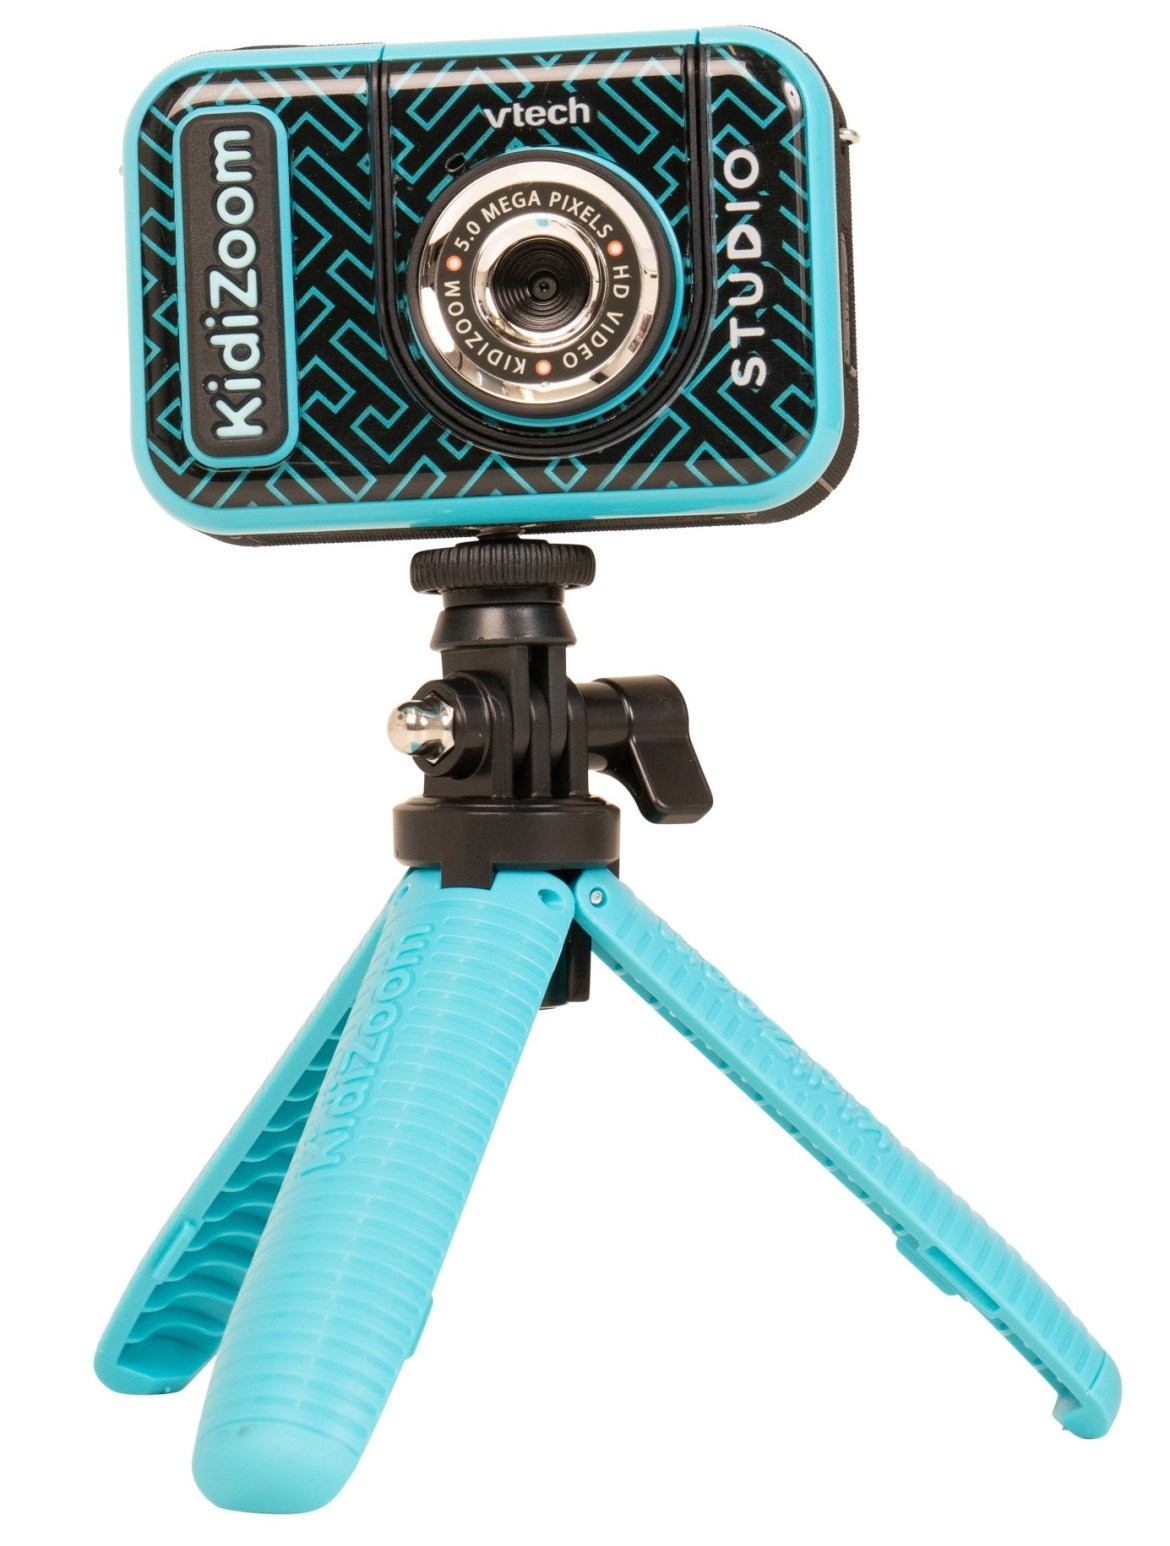 The Vtech KidiZoom is easy to use and even comes with its own green screen